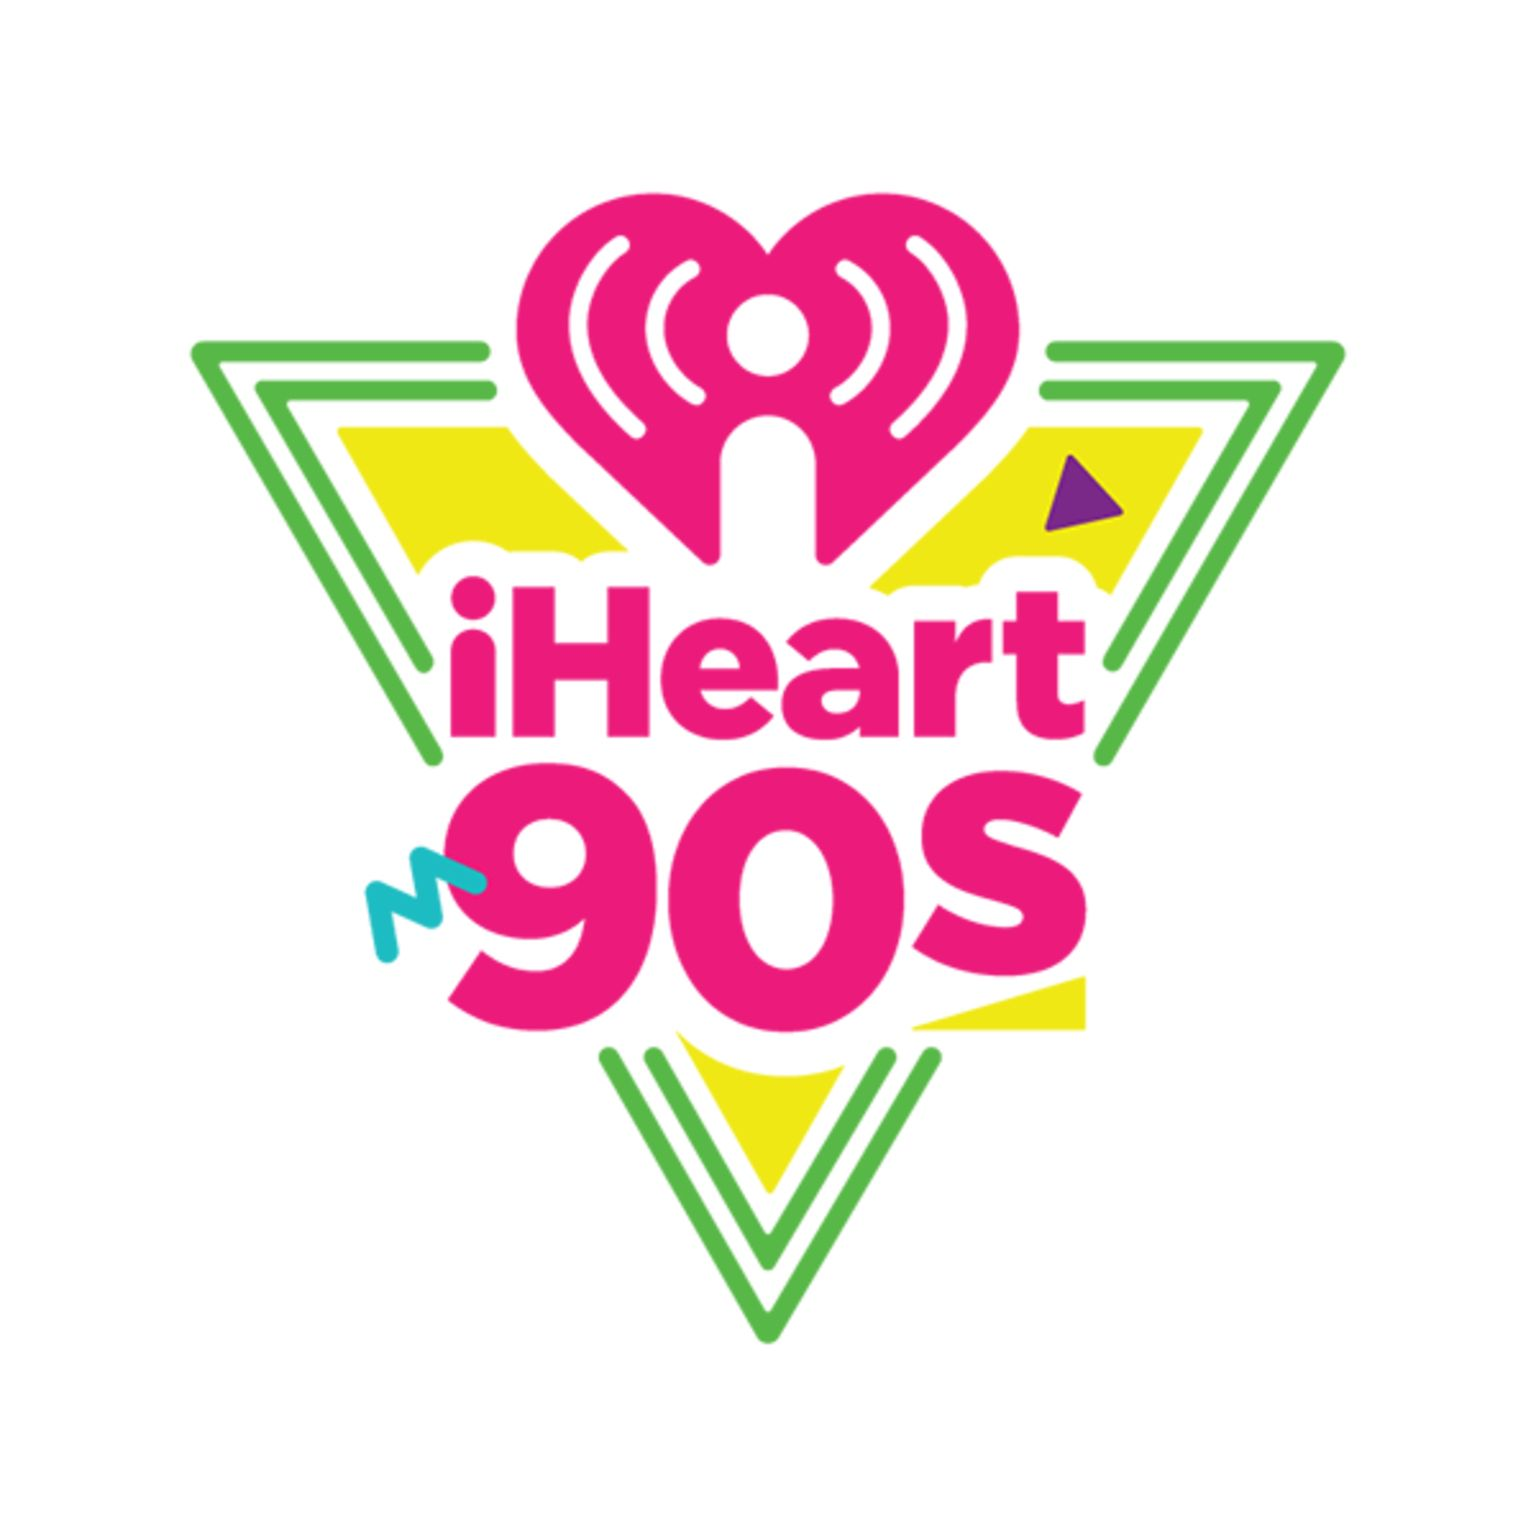 I M Listening To Iheart90s Radio Commercial Free 90s Hits On